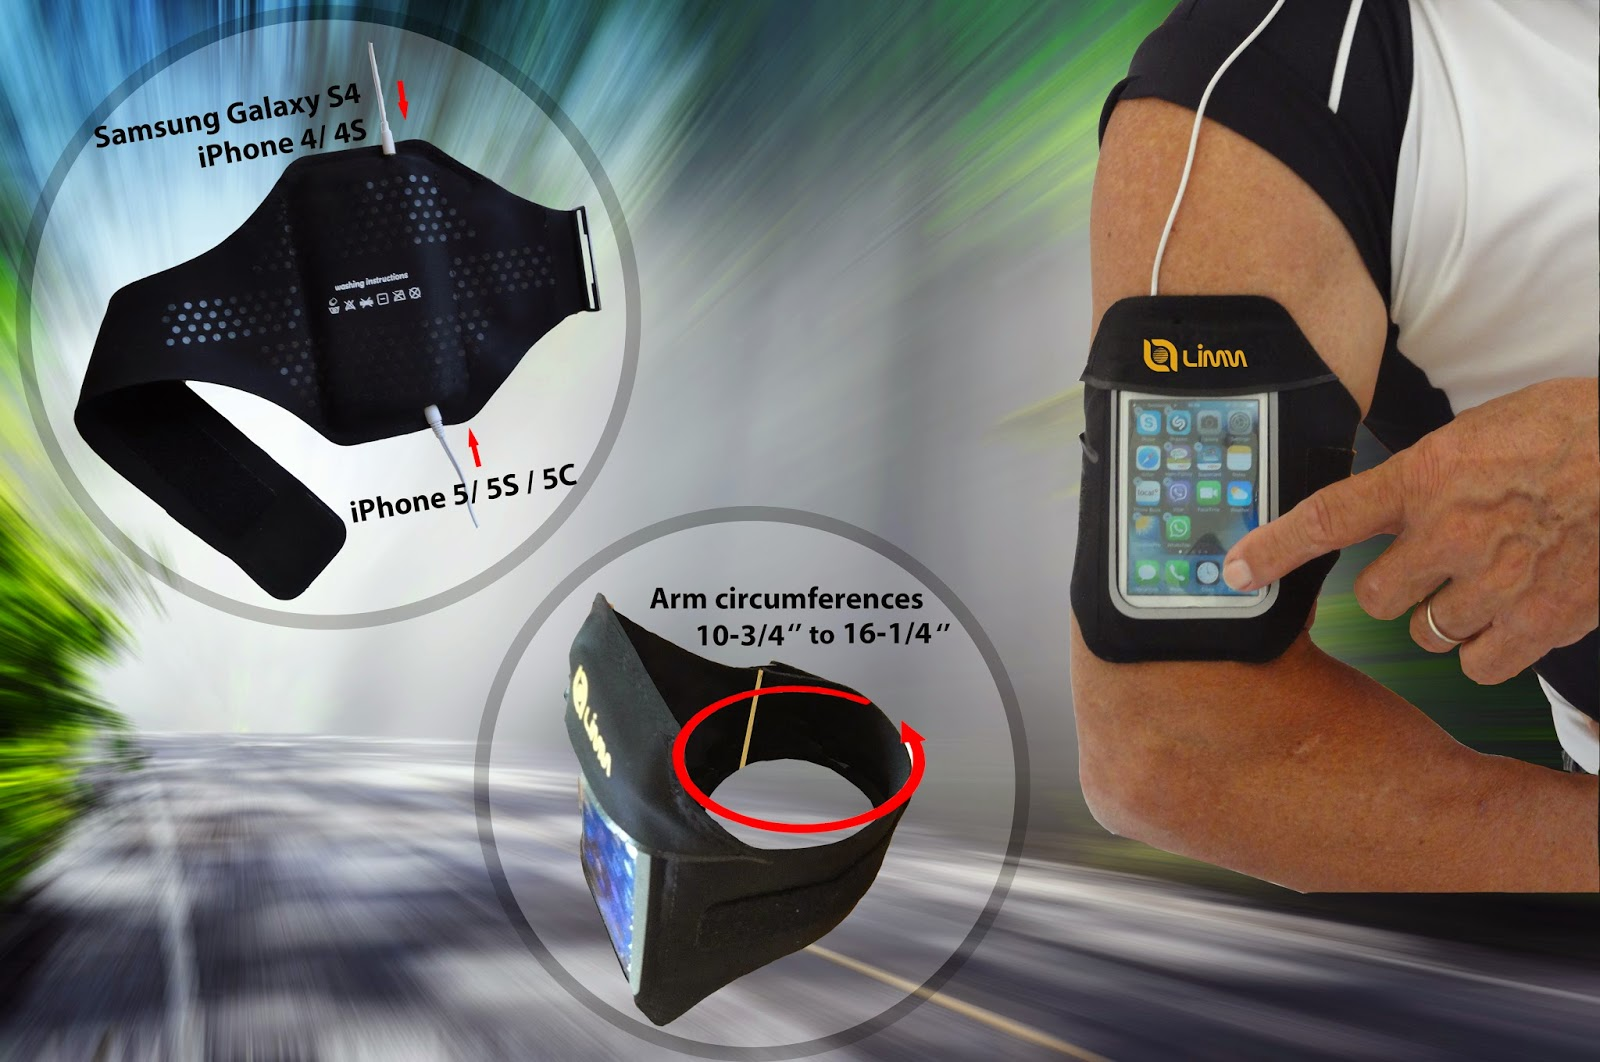 Fully adjustable armband allows you to enjoy all your device's features while keeping it secure, protected and accessible during a run, workout or other exercises.